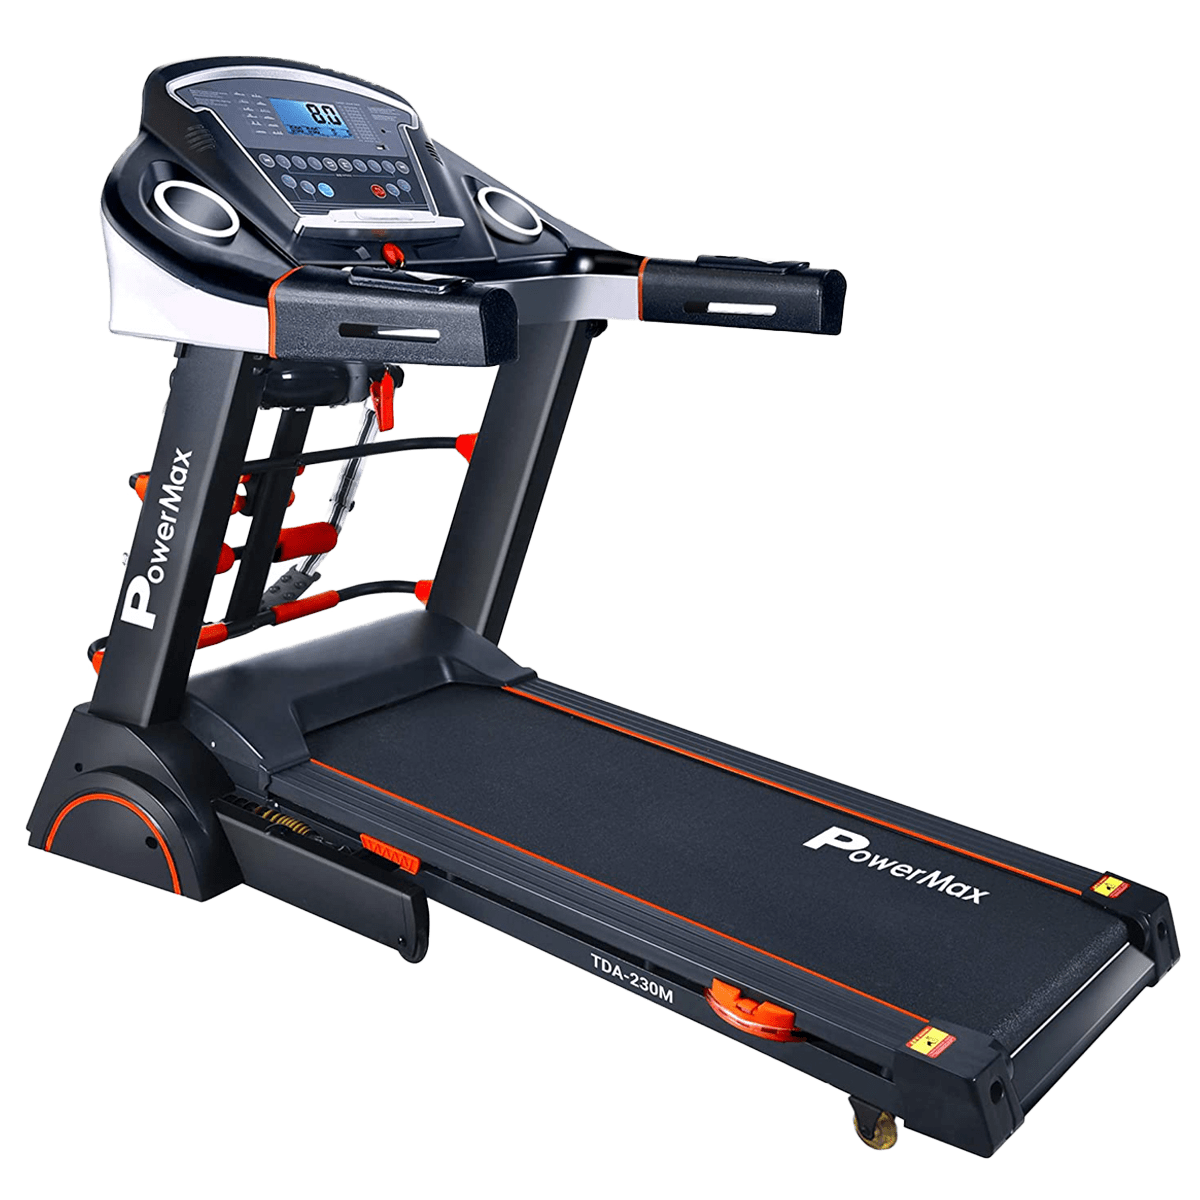 PowerMax MaxTrek 3 HP Foldable Motorized Treadmill (Anti-Bacterial Powder Coat Finish, TDA-230M, Black/Orange)